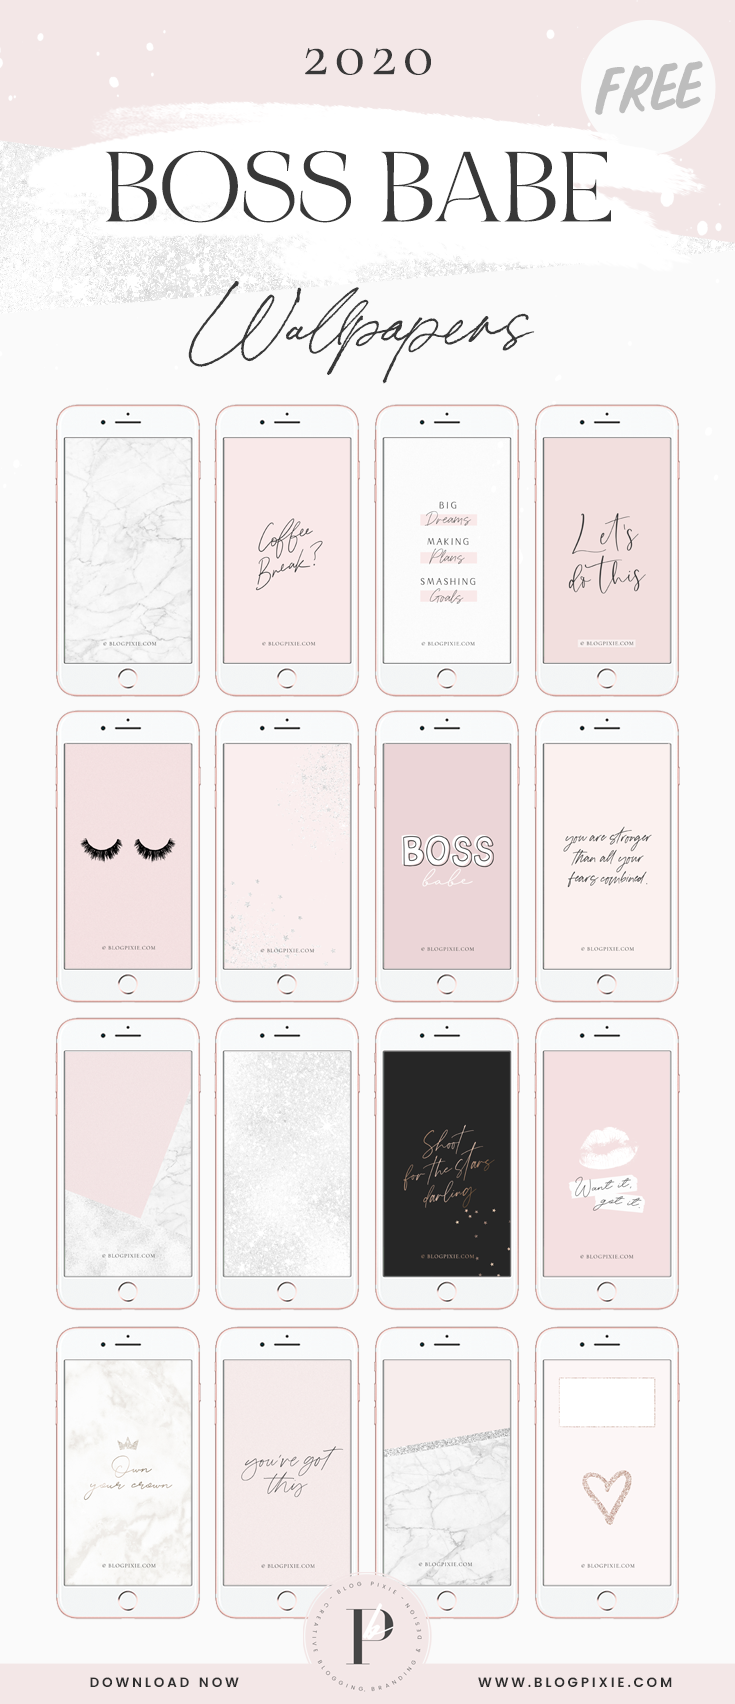 Phone Wallpapers 2020   Girly iPhone Backgrounds   Blog Pixie 735x1704